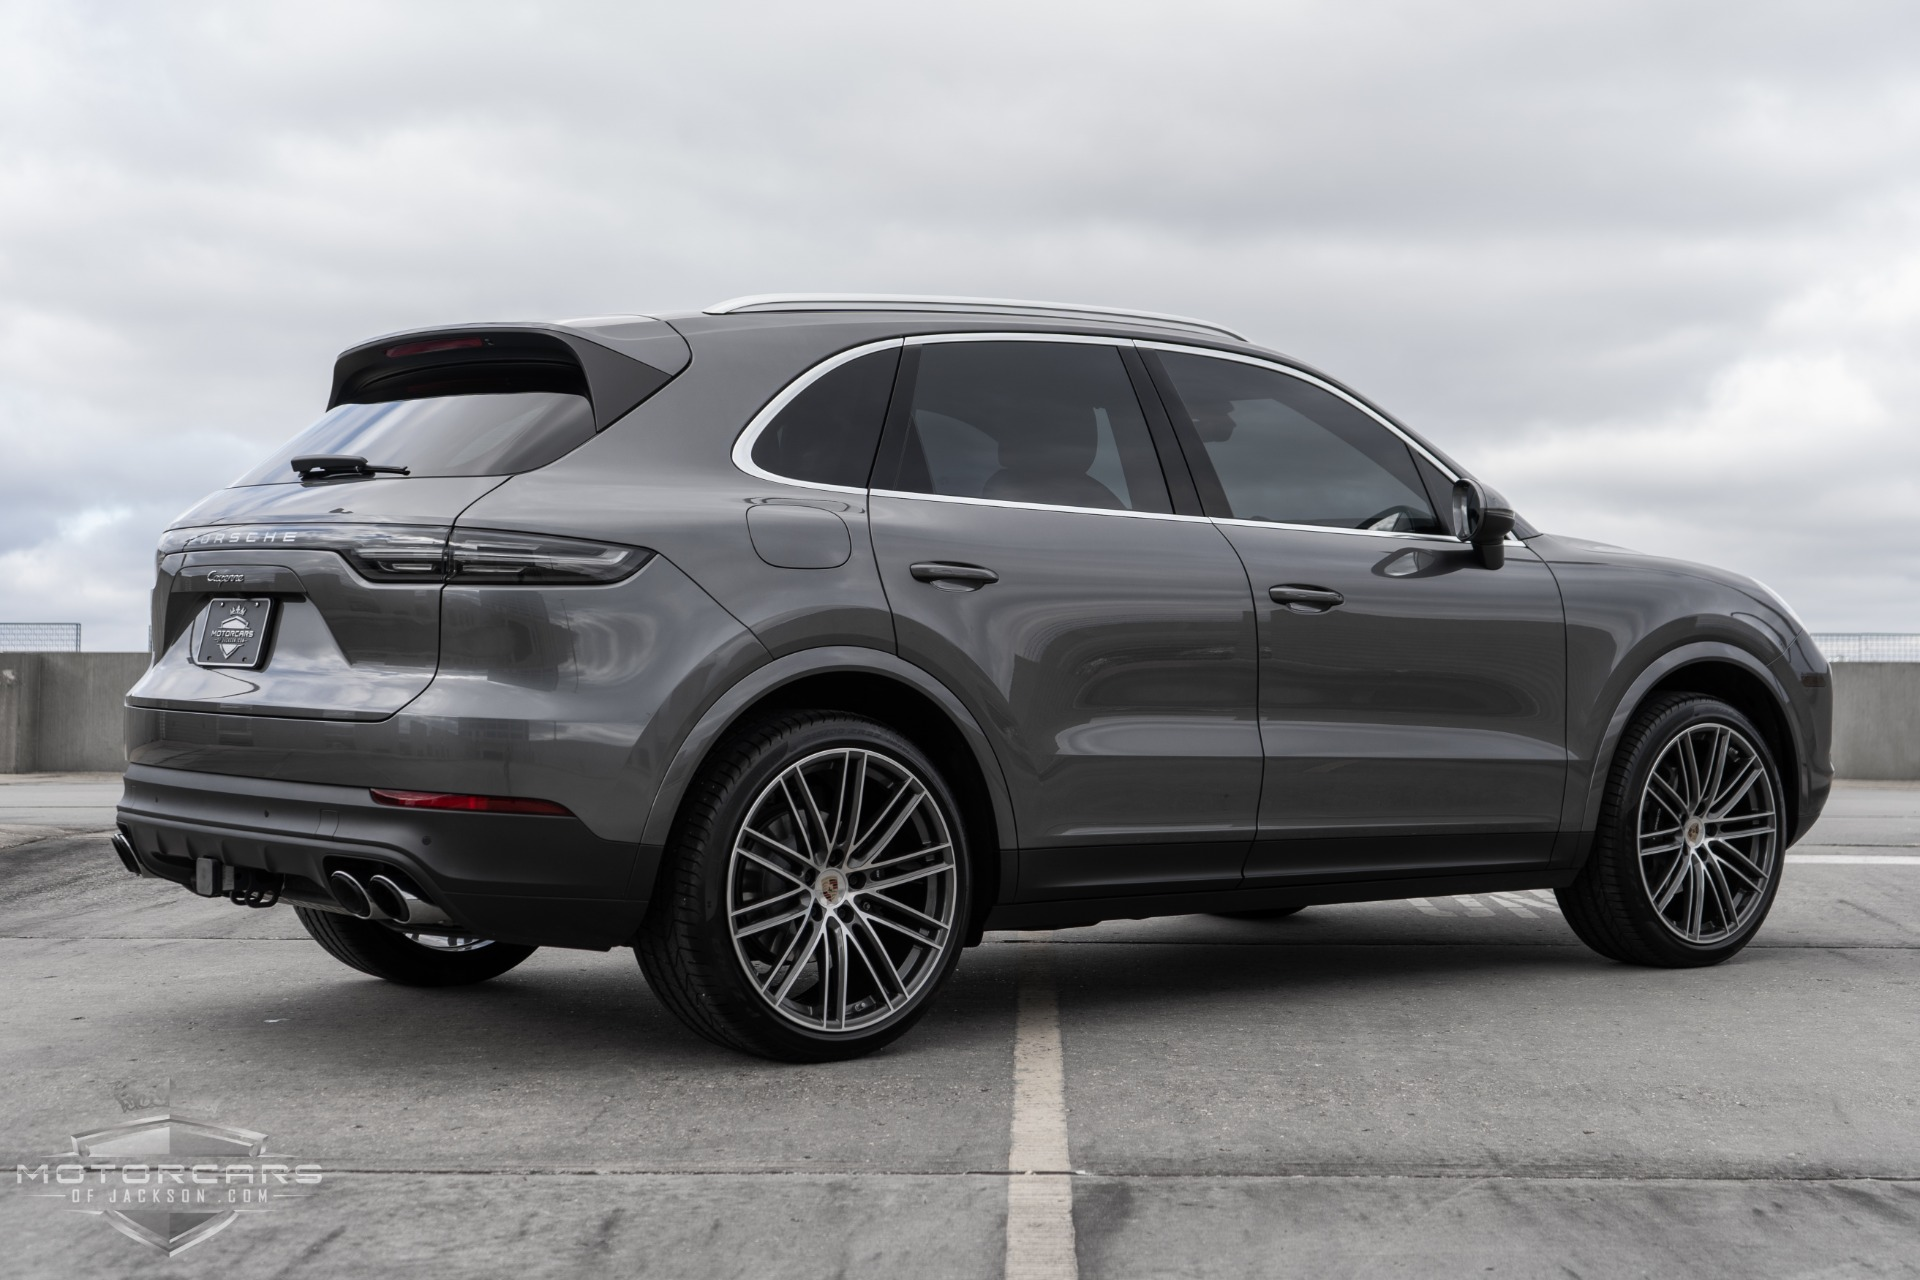 Used-2019-Porsche-Cayenne-for-sale-Jackson-MS